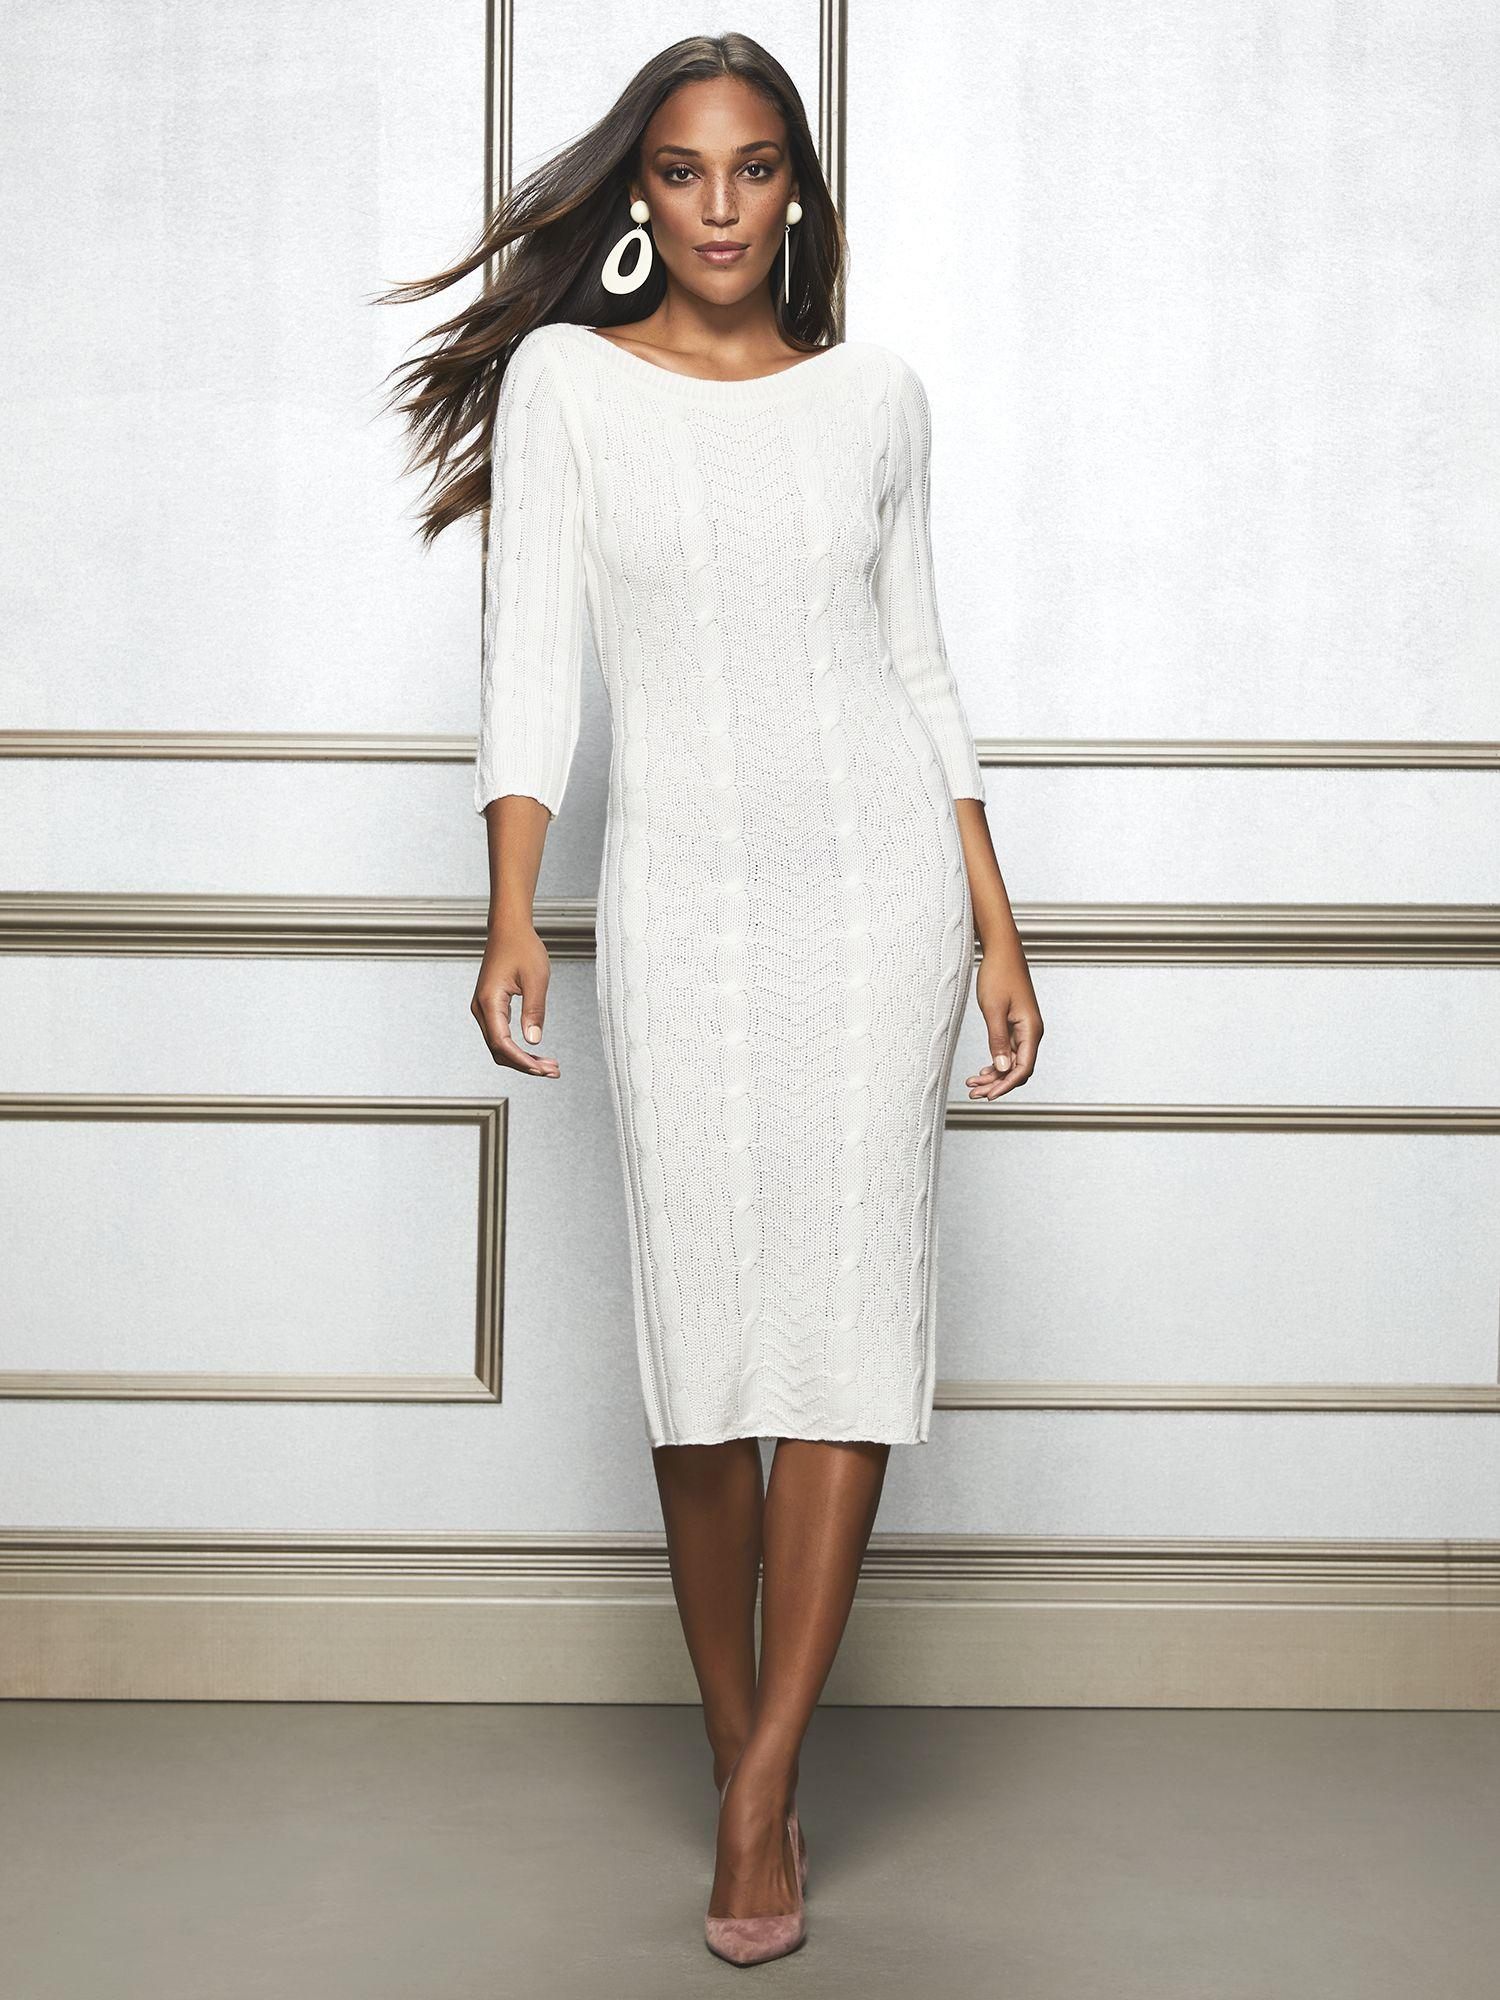 19cc64b71be9 Lyst New York Pany Calina Sweater Dress Eva Mendes. Long White Turtleneck  Sweater Dark Grey Pants Tall Black Boots Winter Snow Outfit